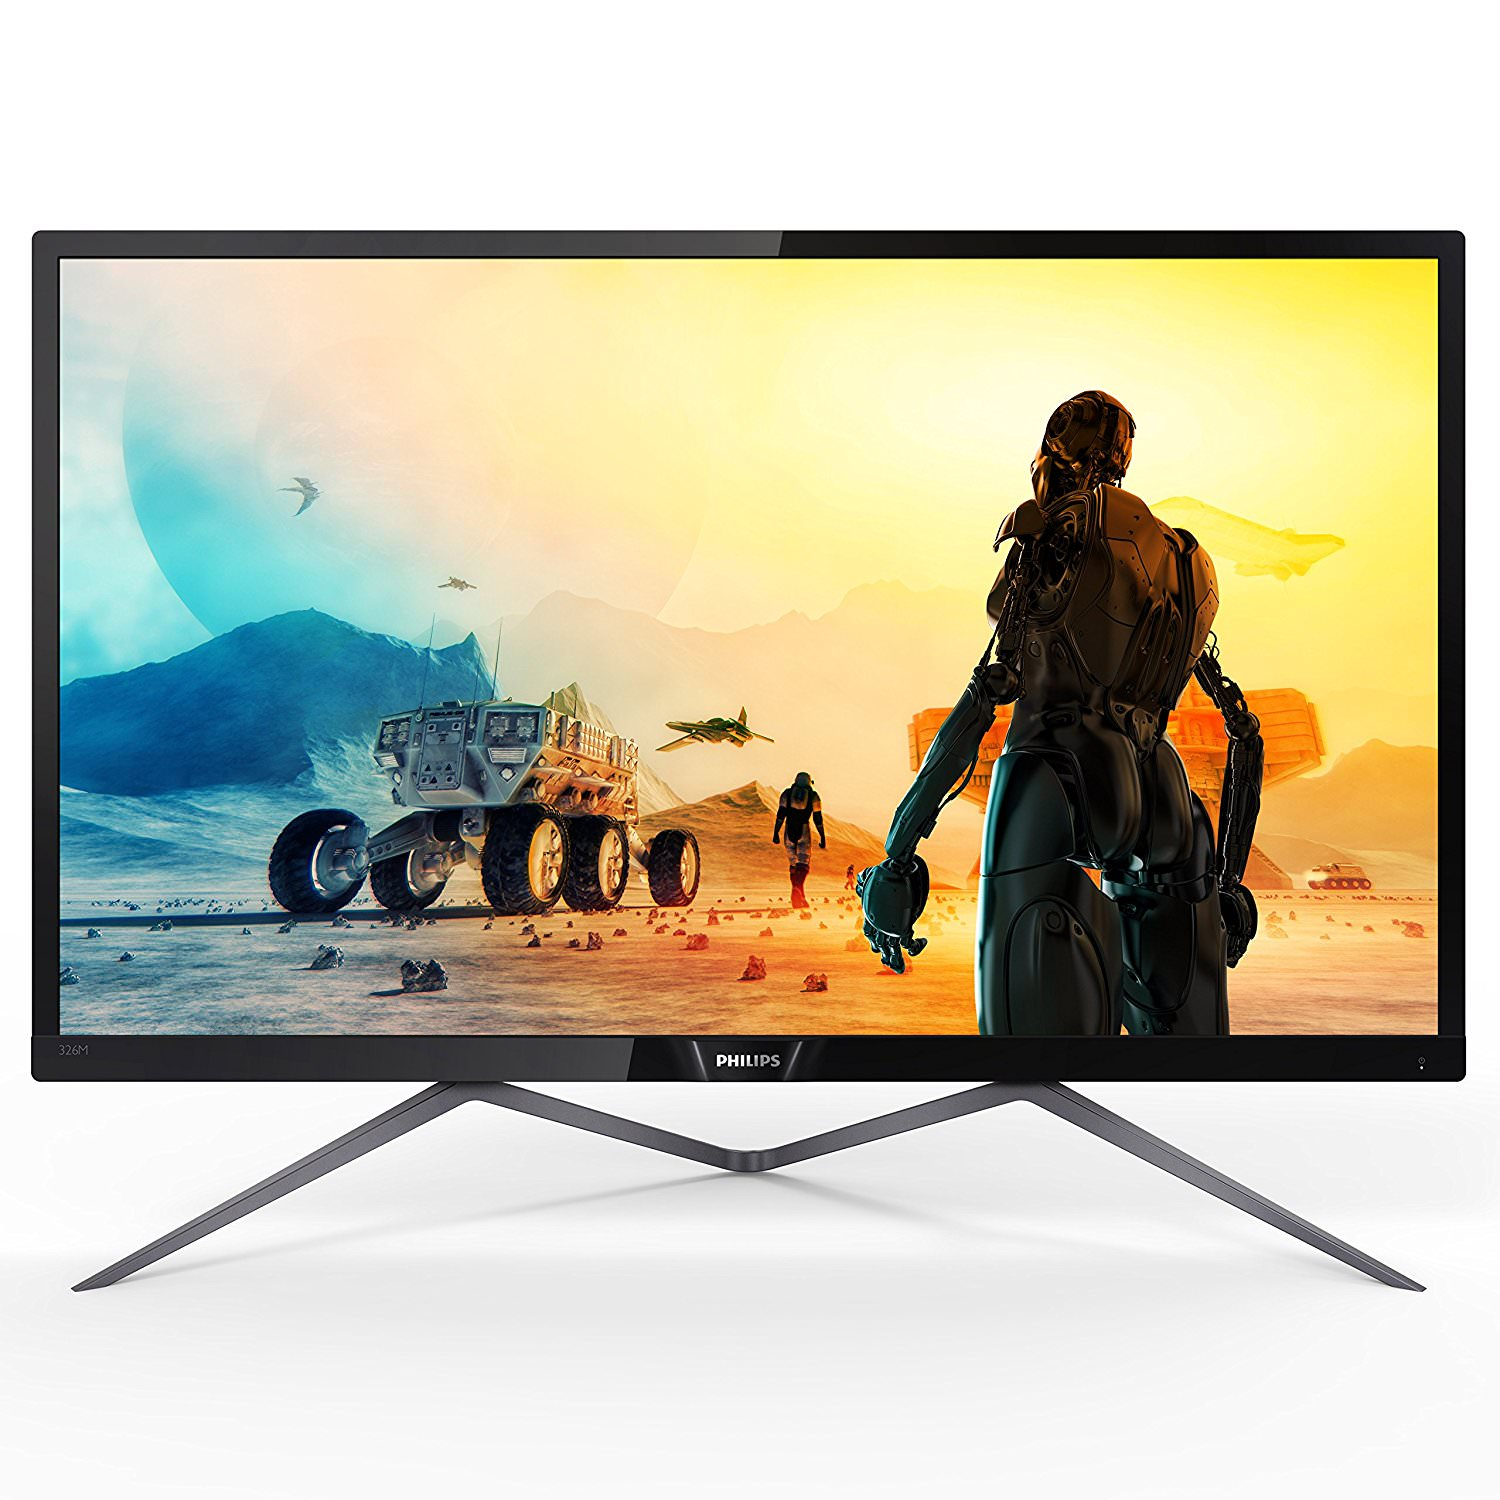 "Philips Monitor 32"" Class IPS Panel QUAD 2560x1440 Res VGA HDMI DisplayPortx2 326M6FJSB by Philips"